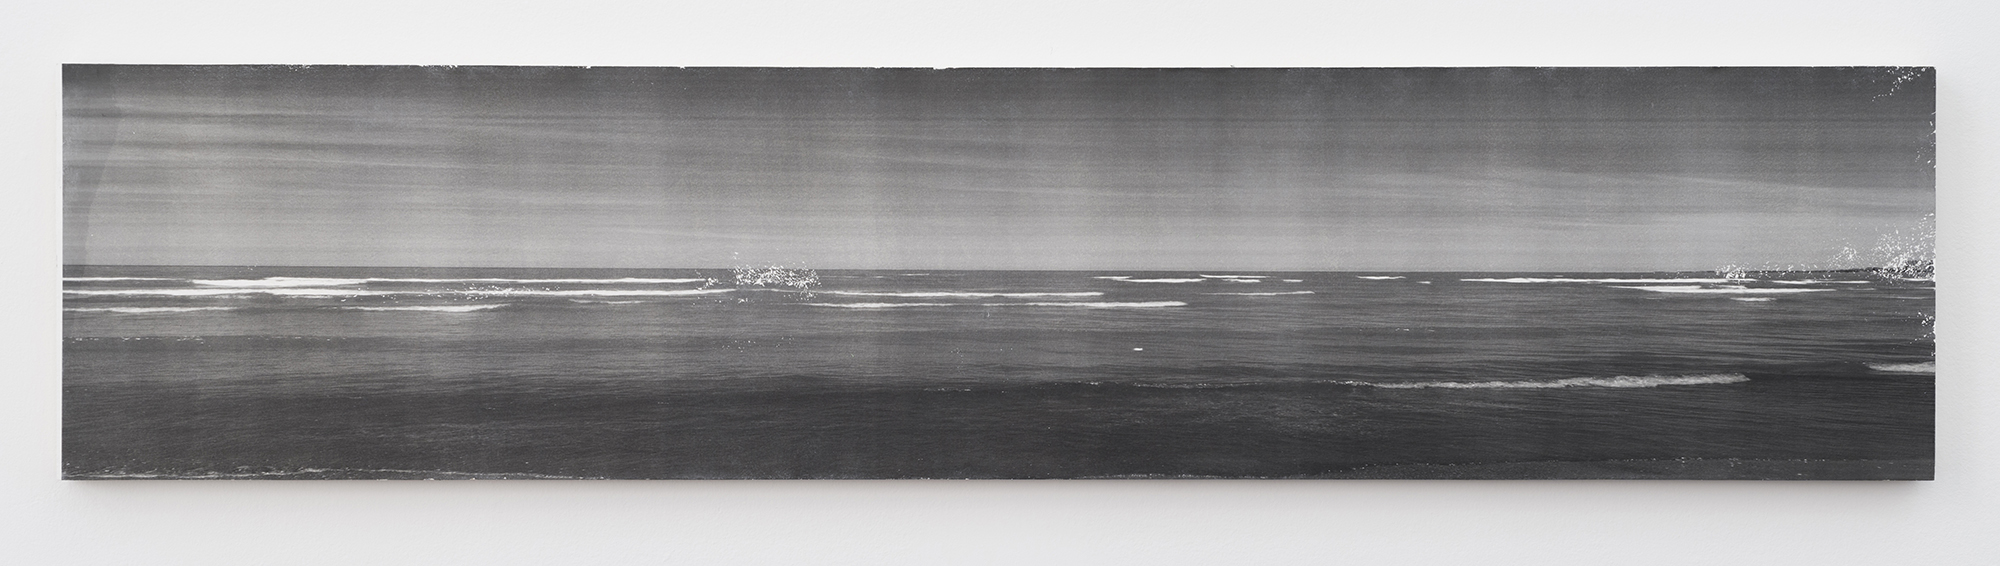 Ian Weaver, Shoreline I, 2014, photographic transfer with sanding and wax on panel, 18 x 76 inches